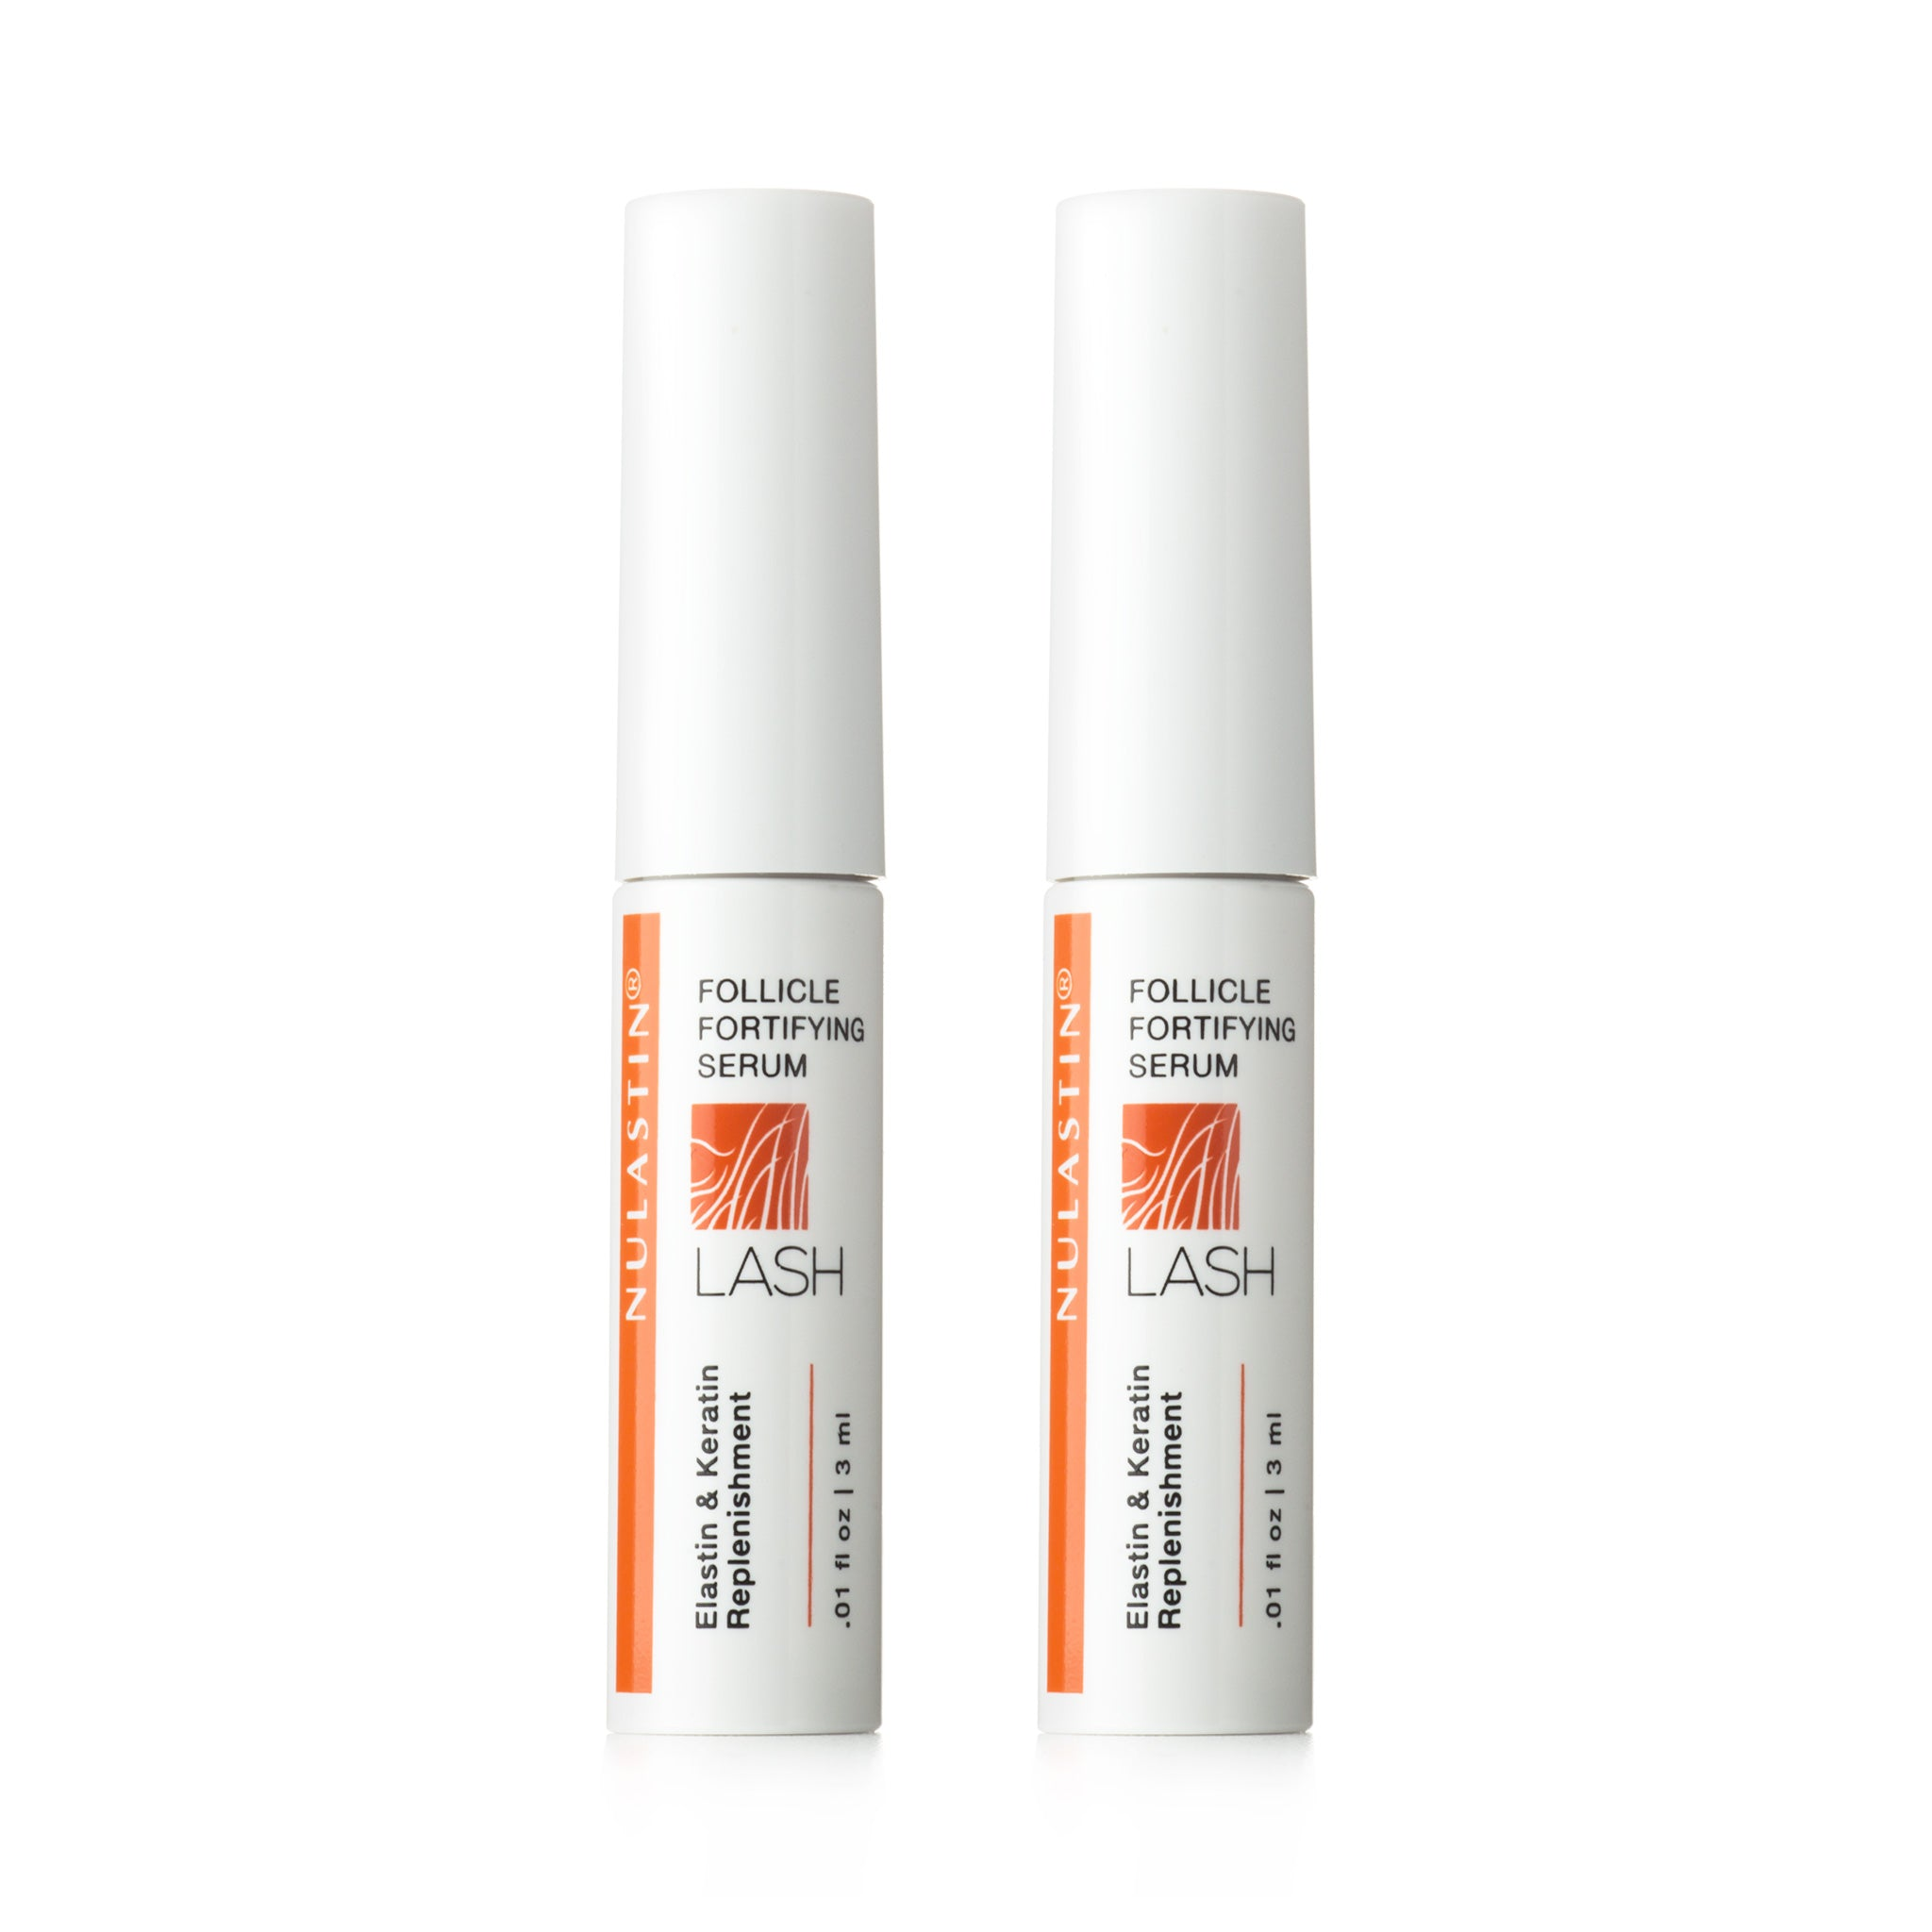 LASH 2-PACK Follicle Fortifying Serum with Keracyte® Elastin Complex